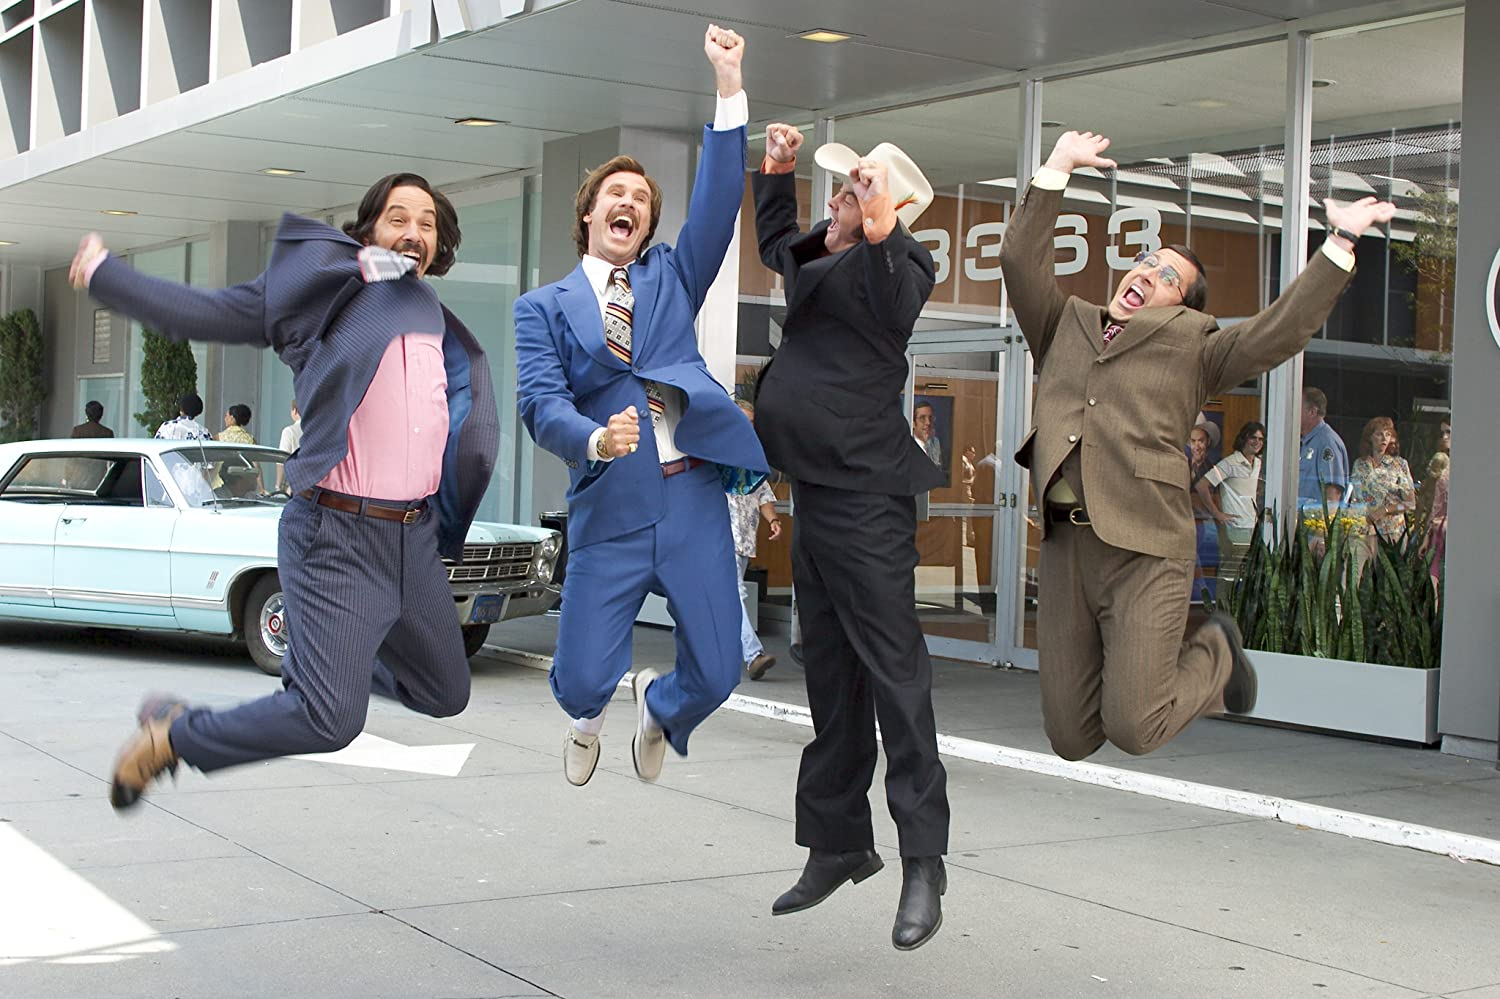 Will Ferrell, Steve Carell, David Koechner, and Paul Rudd in Anchorman: The Legend of Ron Burgundy (2004)